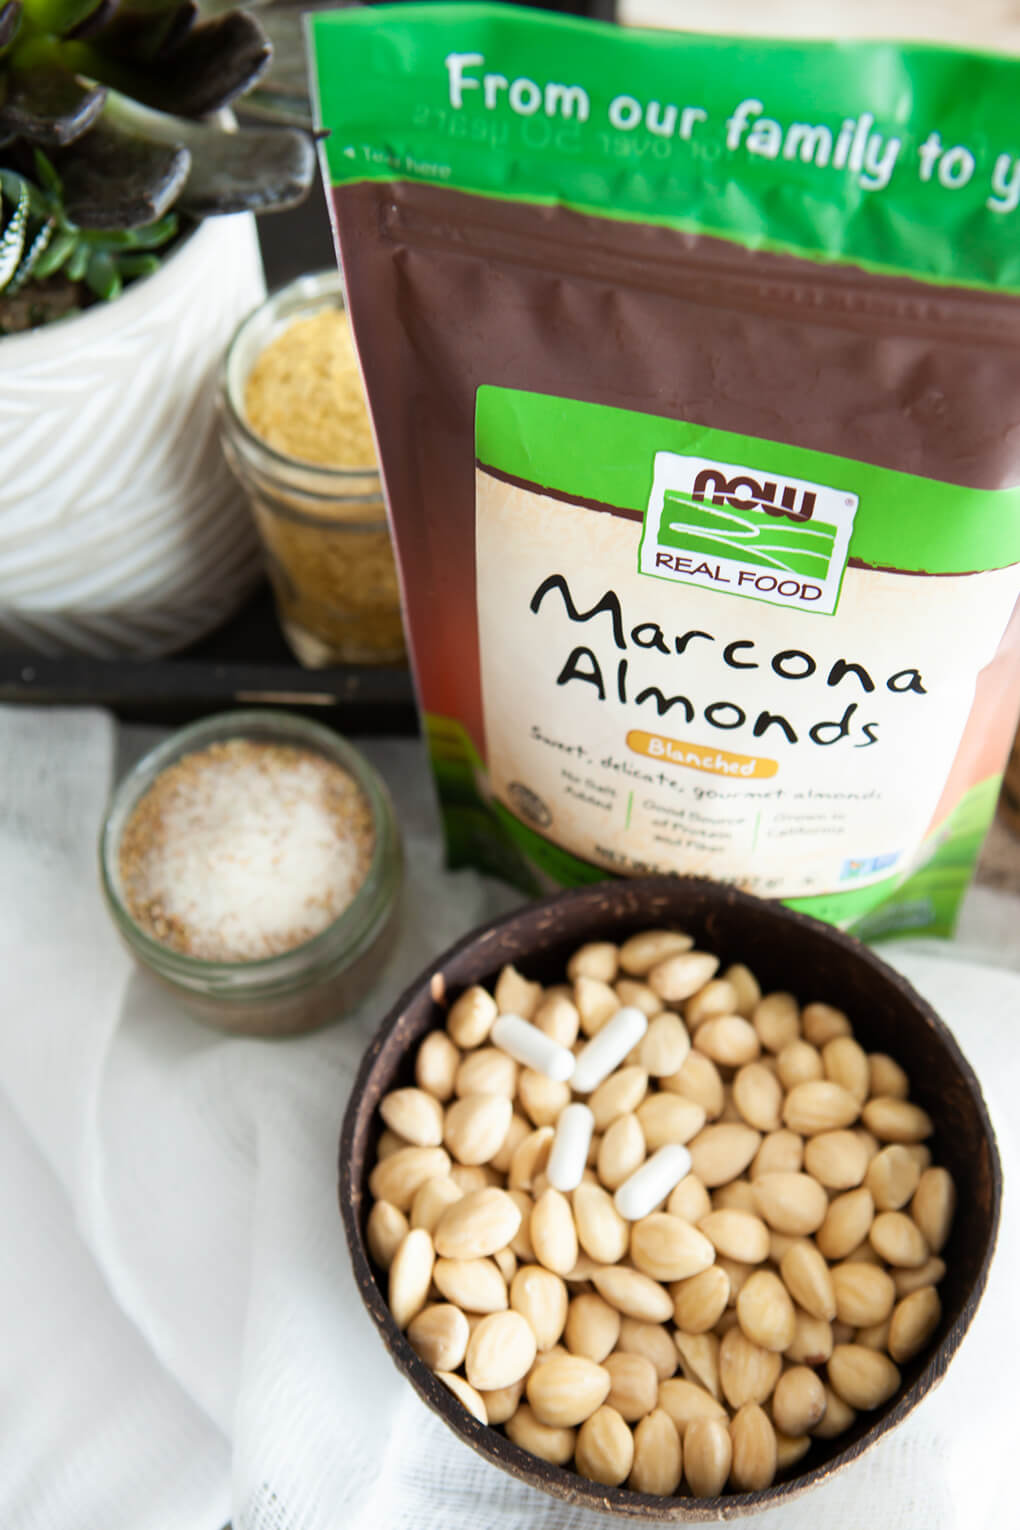 Probiotic Vegan Cheese agutsygirl.com #probiotic #guthealth #vegancheese #veganrecipes 5 ingredient recipe NOW Foods Marcona Almonds